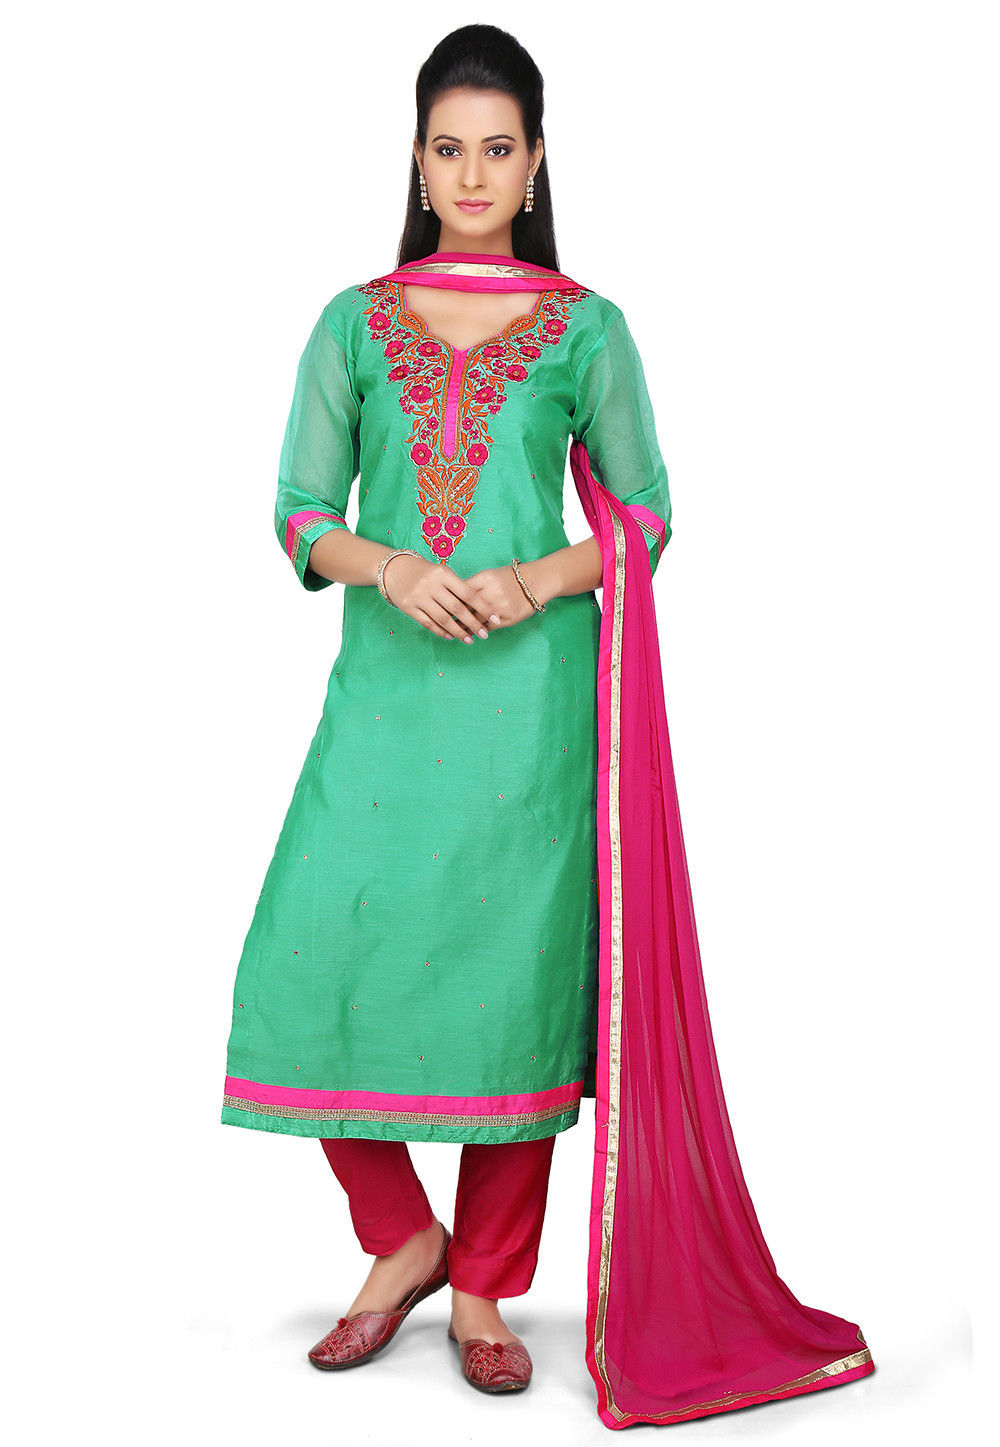 Embroidered Straight Cut Chanderi Cotton Suit in Teal Green